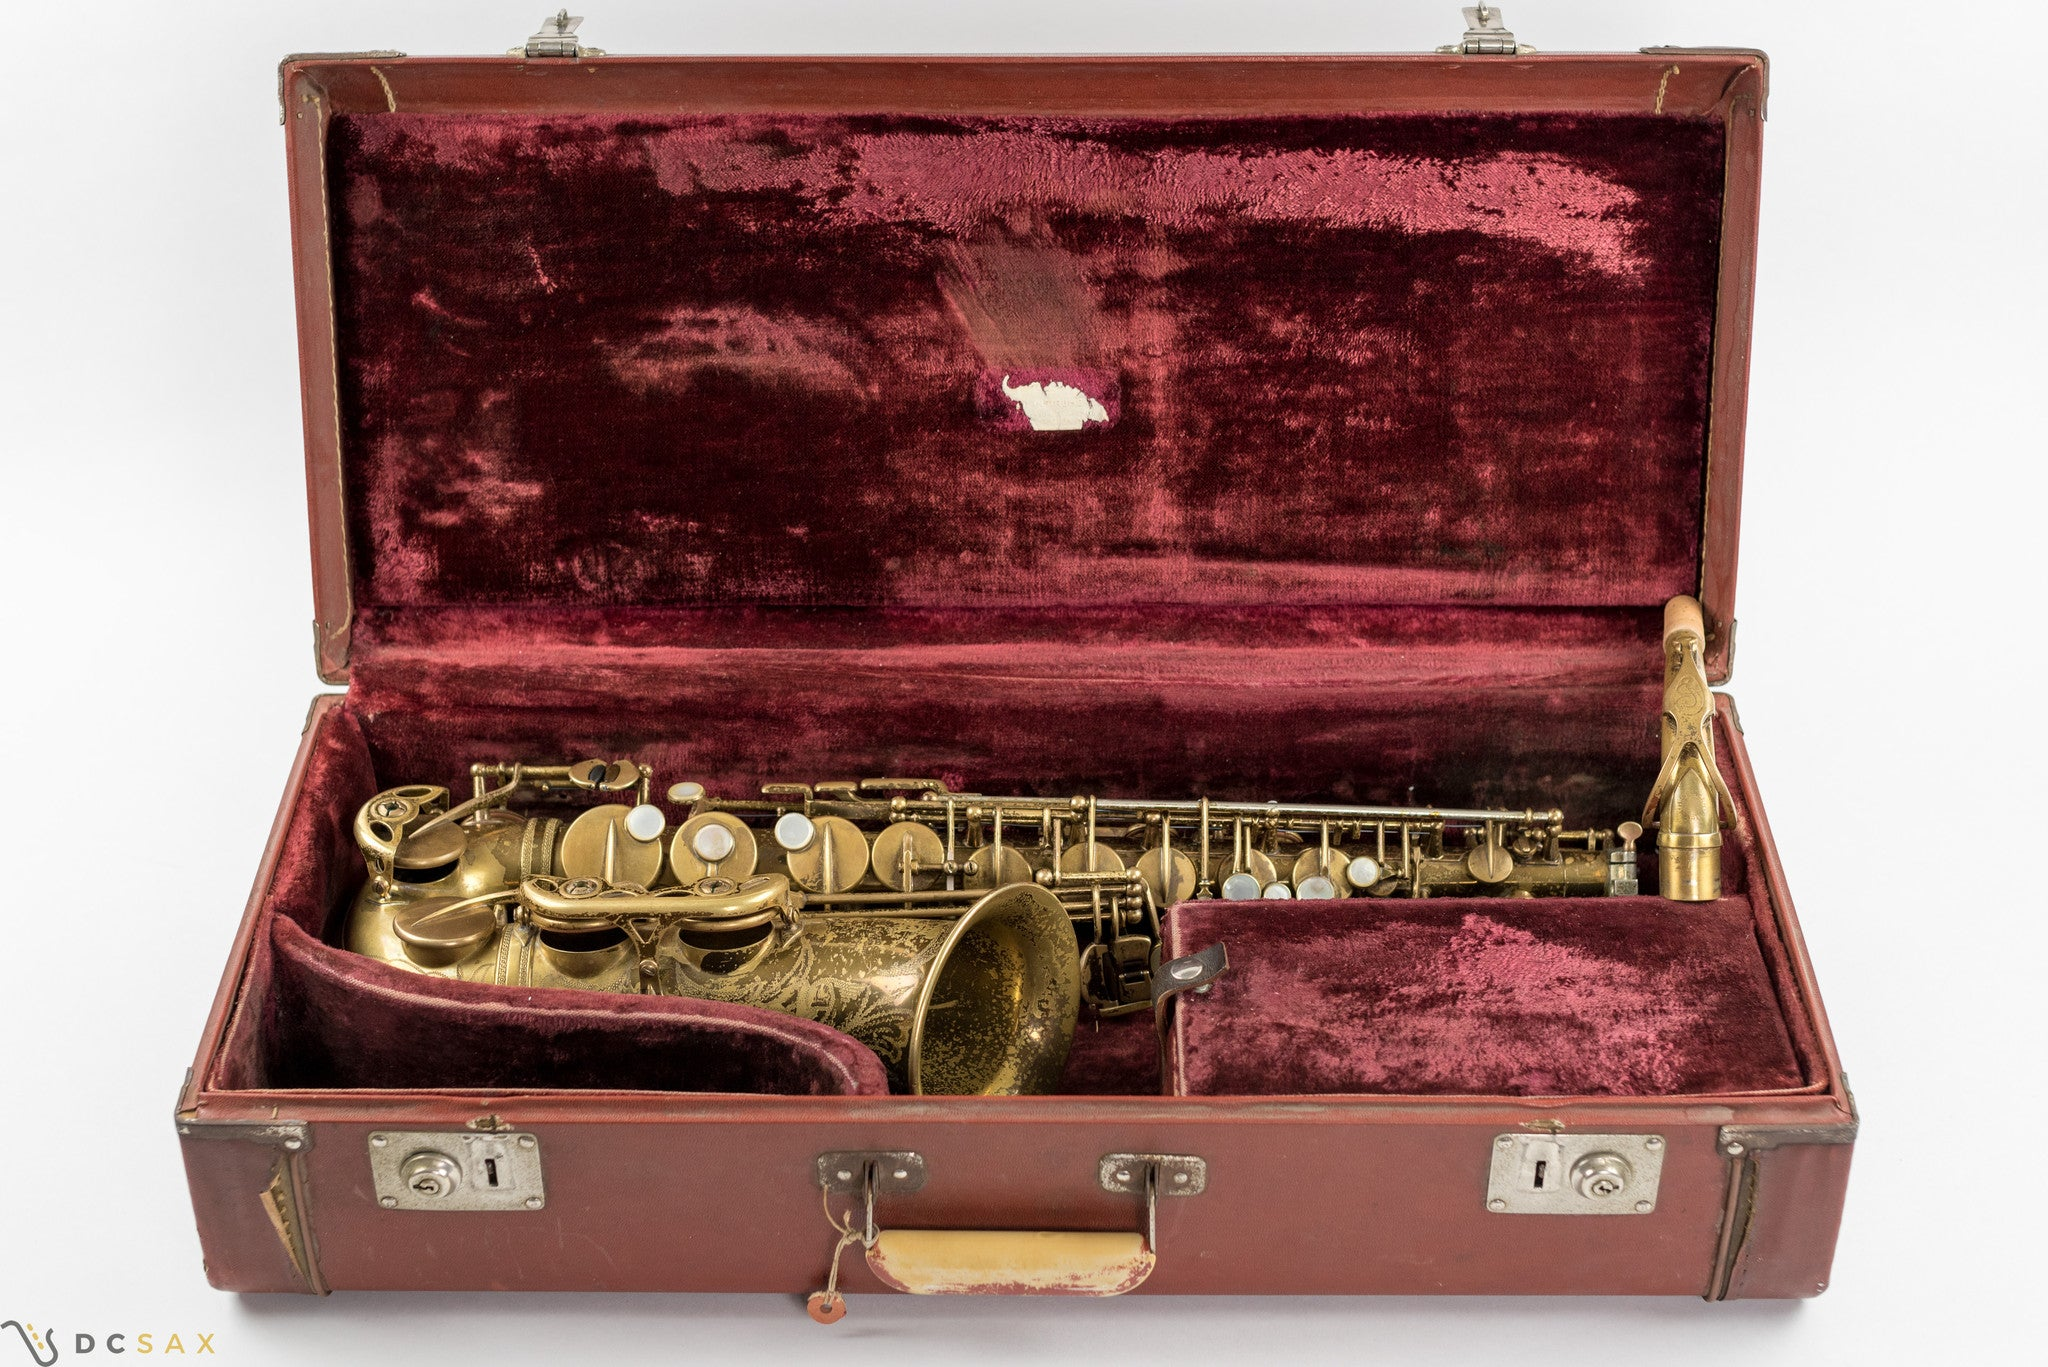 1954 Selmer Mark VI Alto Saxophone, Original Lacquer, Double S Neck